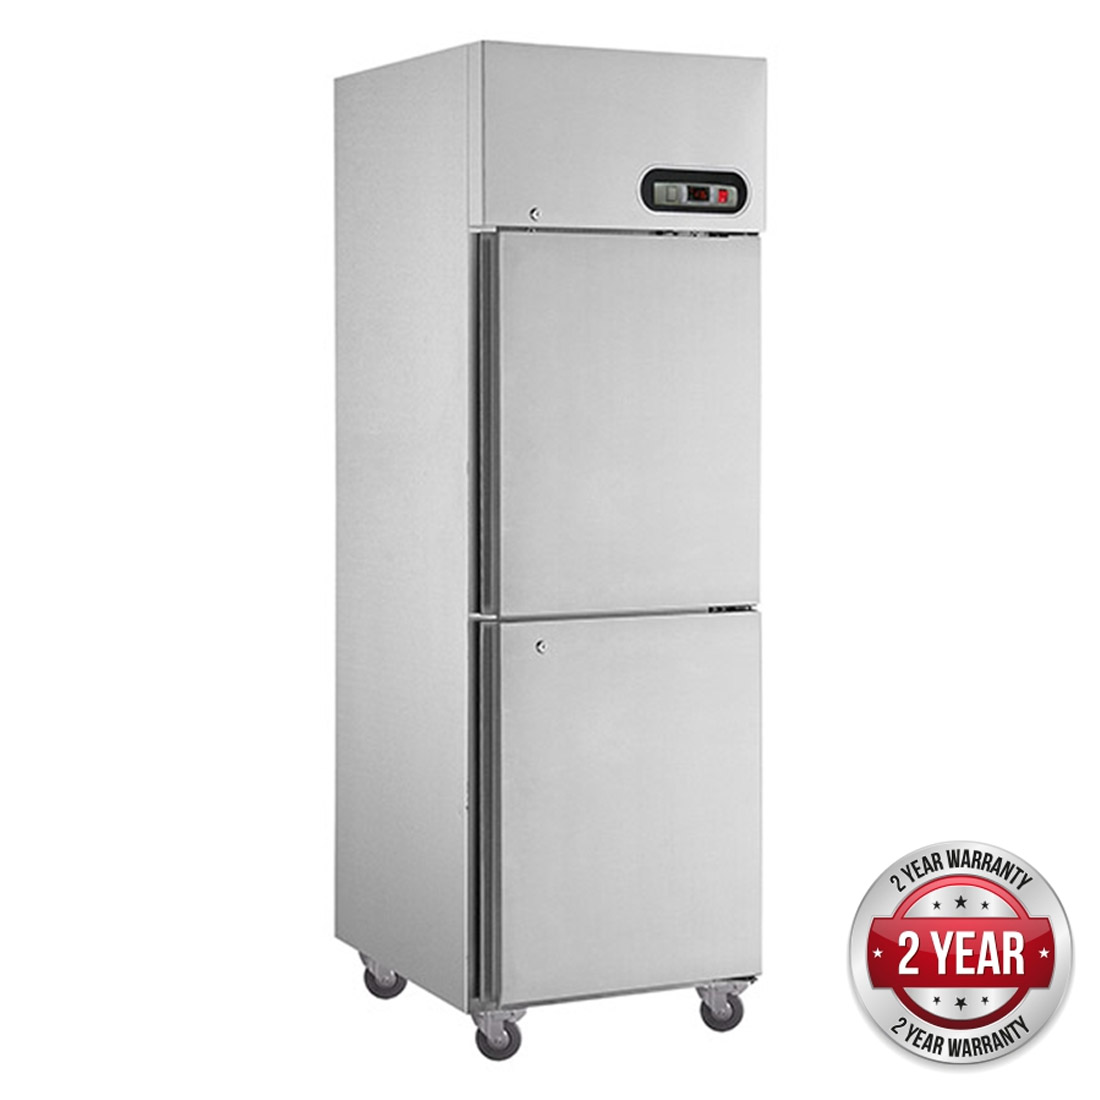 SUC600 TROPICAL Thermaster 2 x ½ door SS Fridge